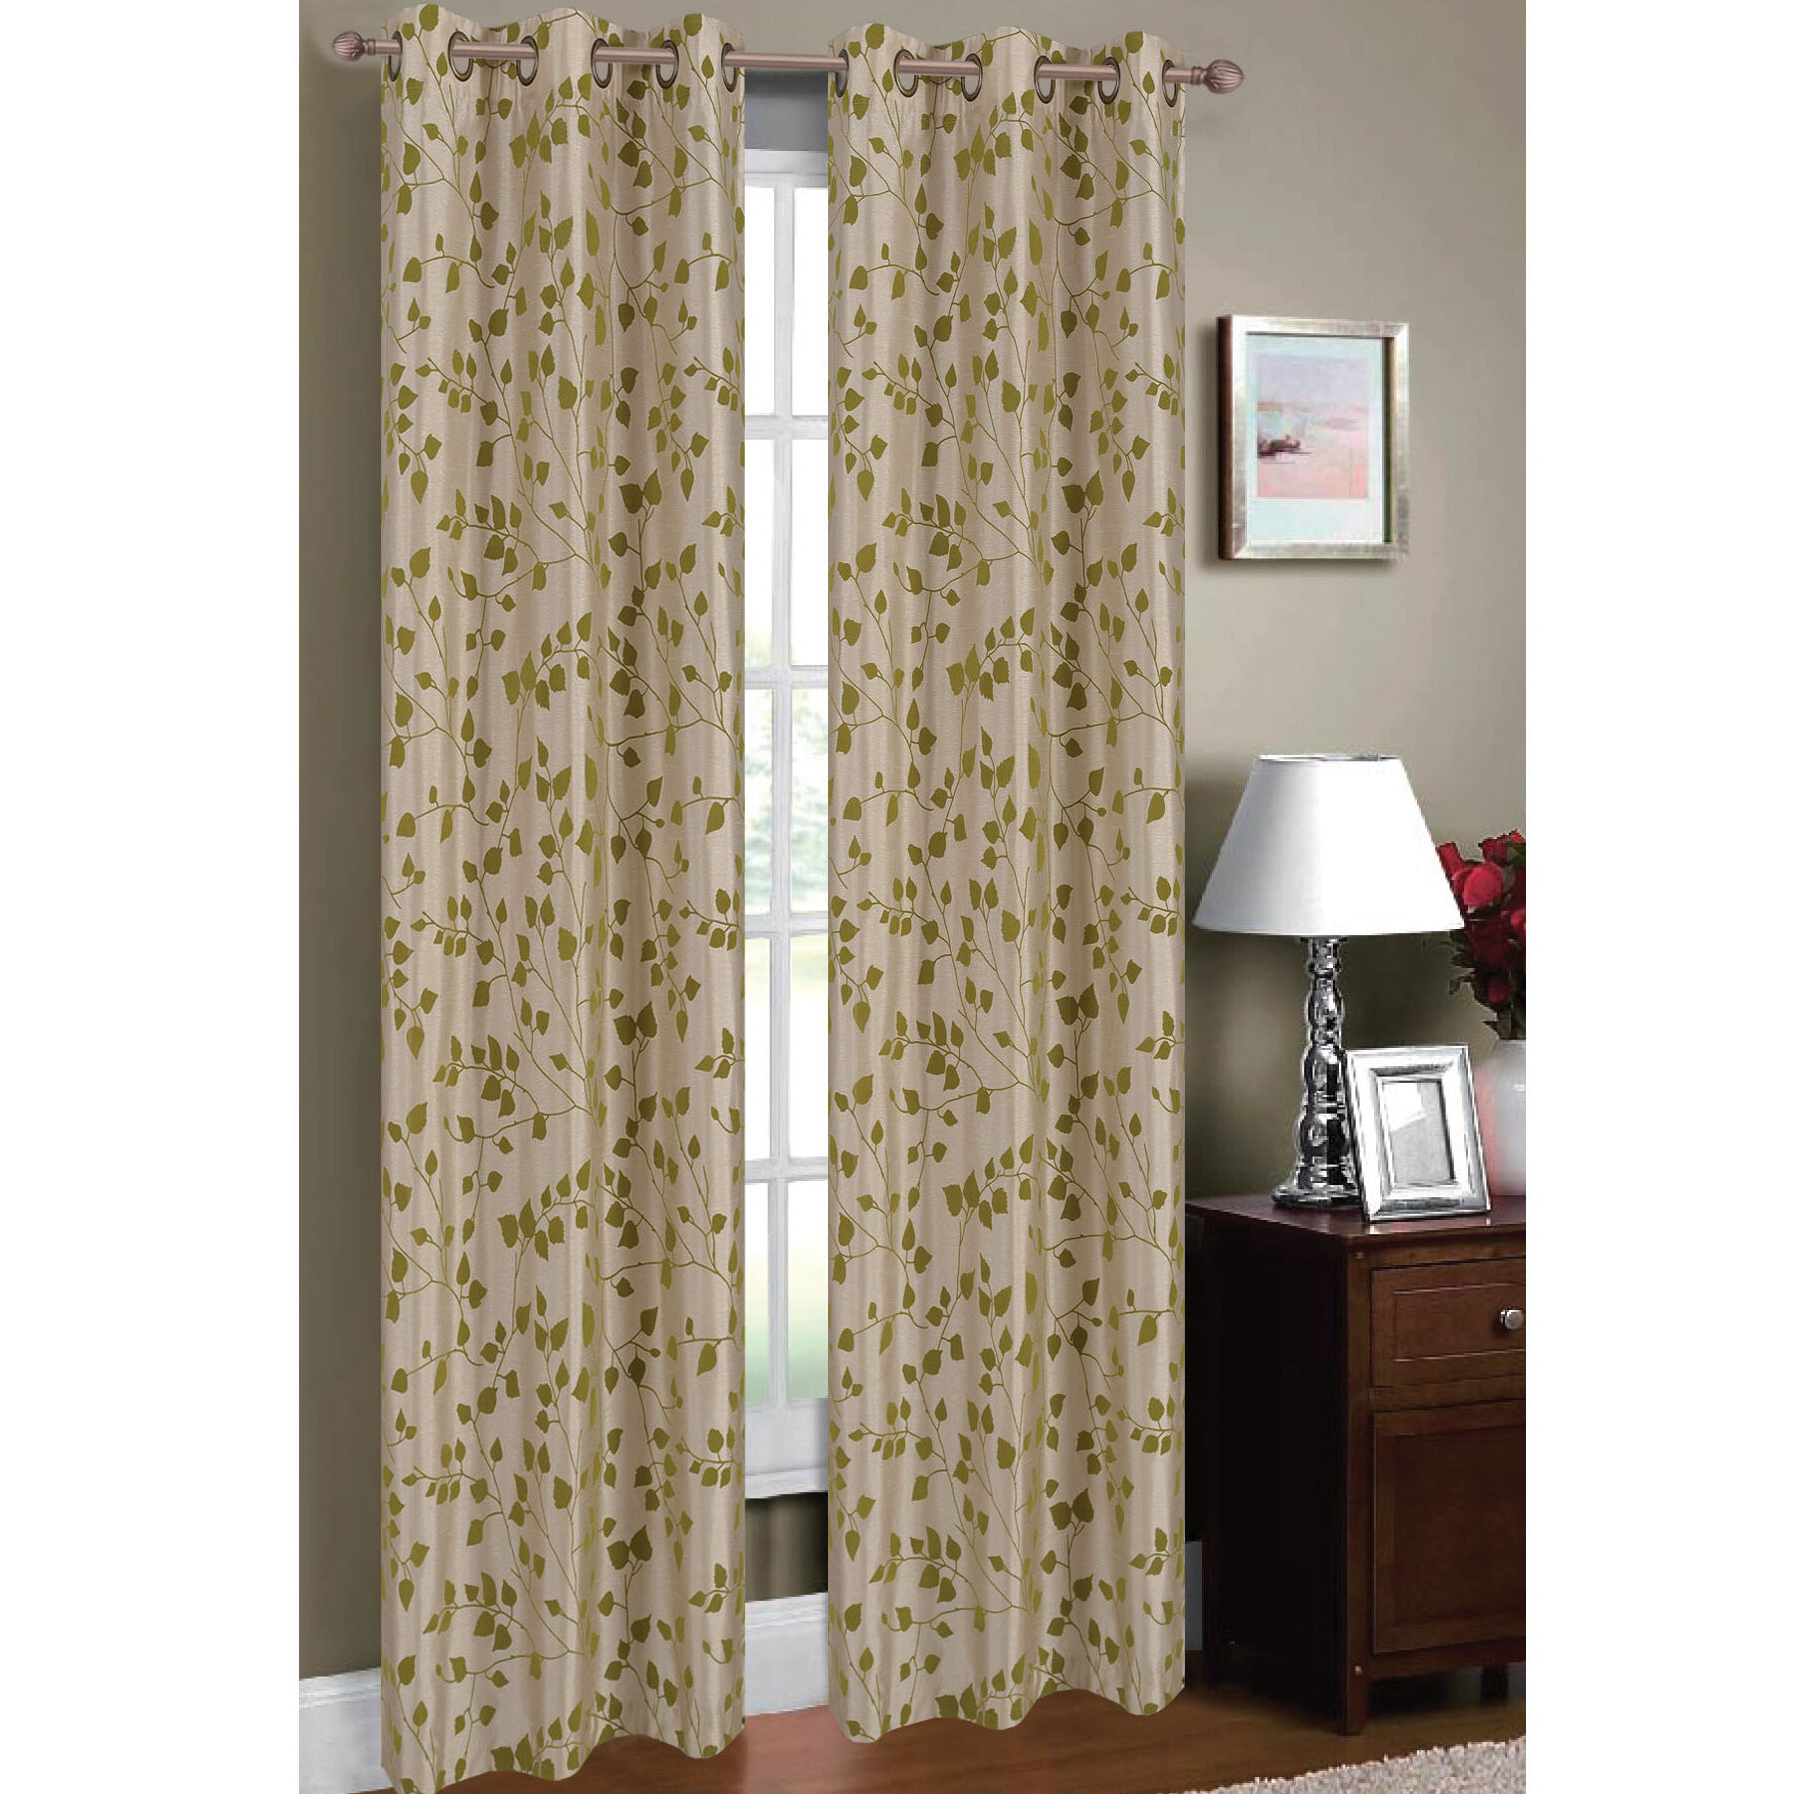 Luxury Collection Cranston Sheer Curtain Panel Pairs Pertaining To Well Known Meadow Nature/floral Sheer Grommet Curtain Panels (View 20 of 20)